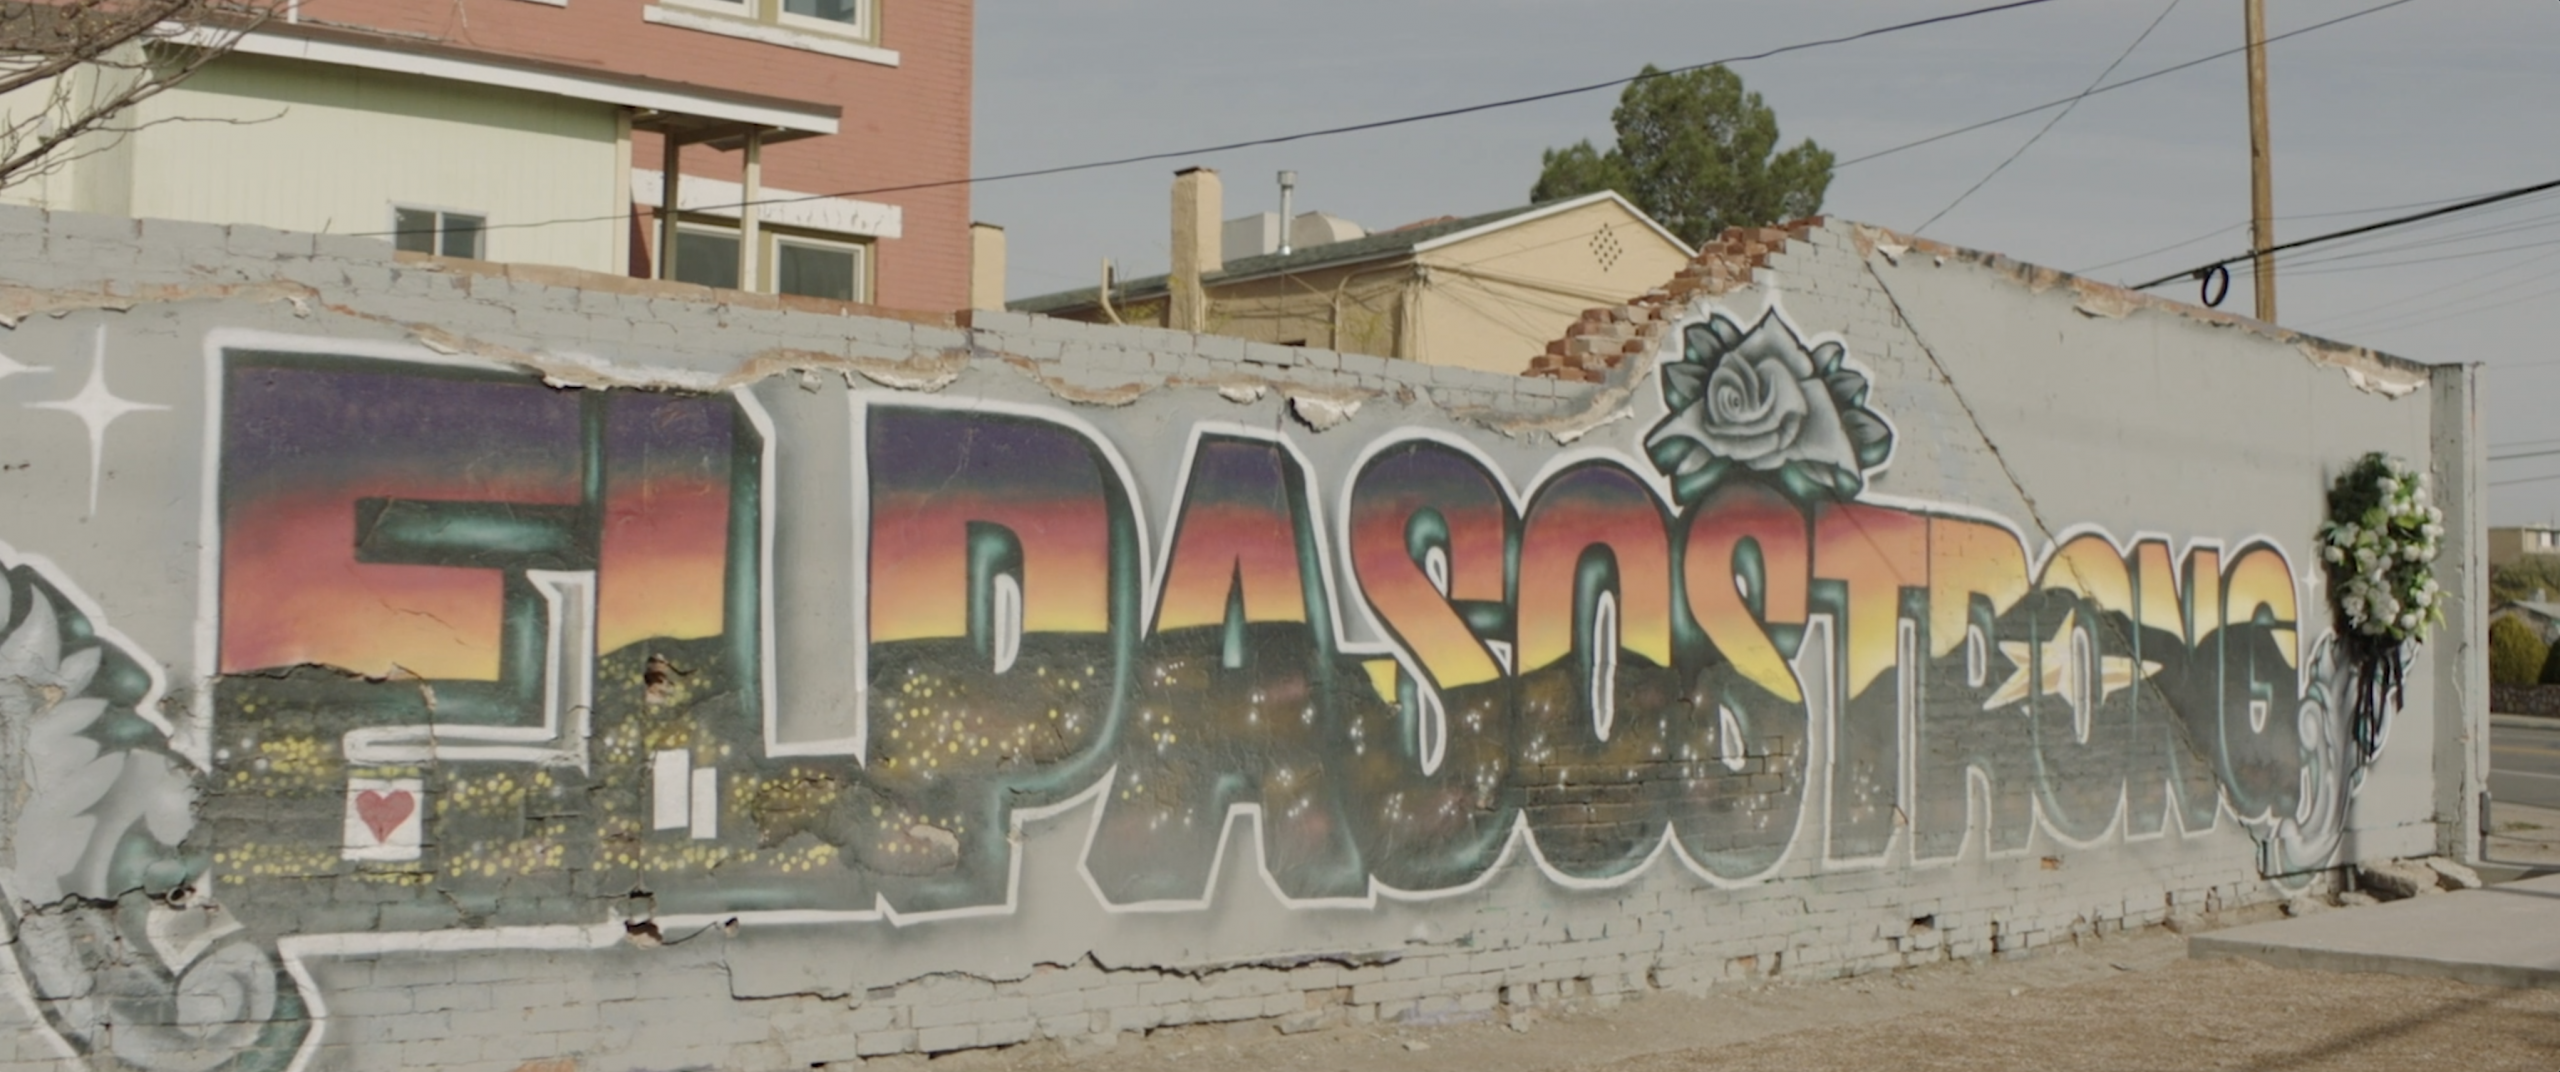 """graffiti that spells out """"El Paso strong"""""""